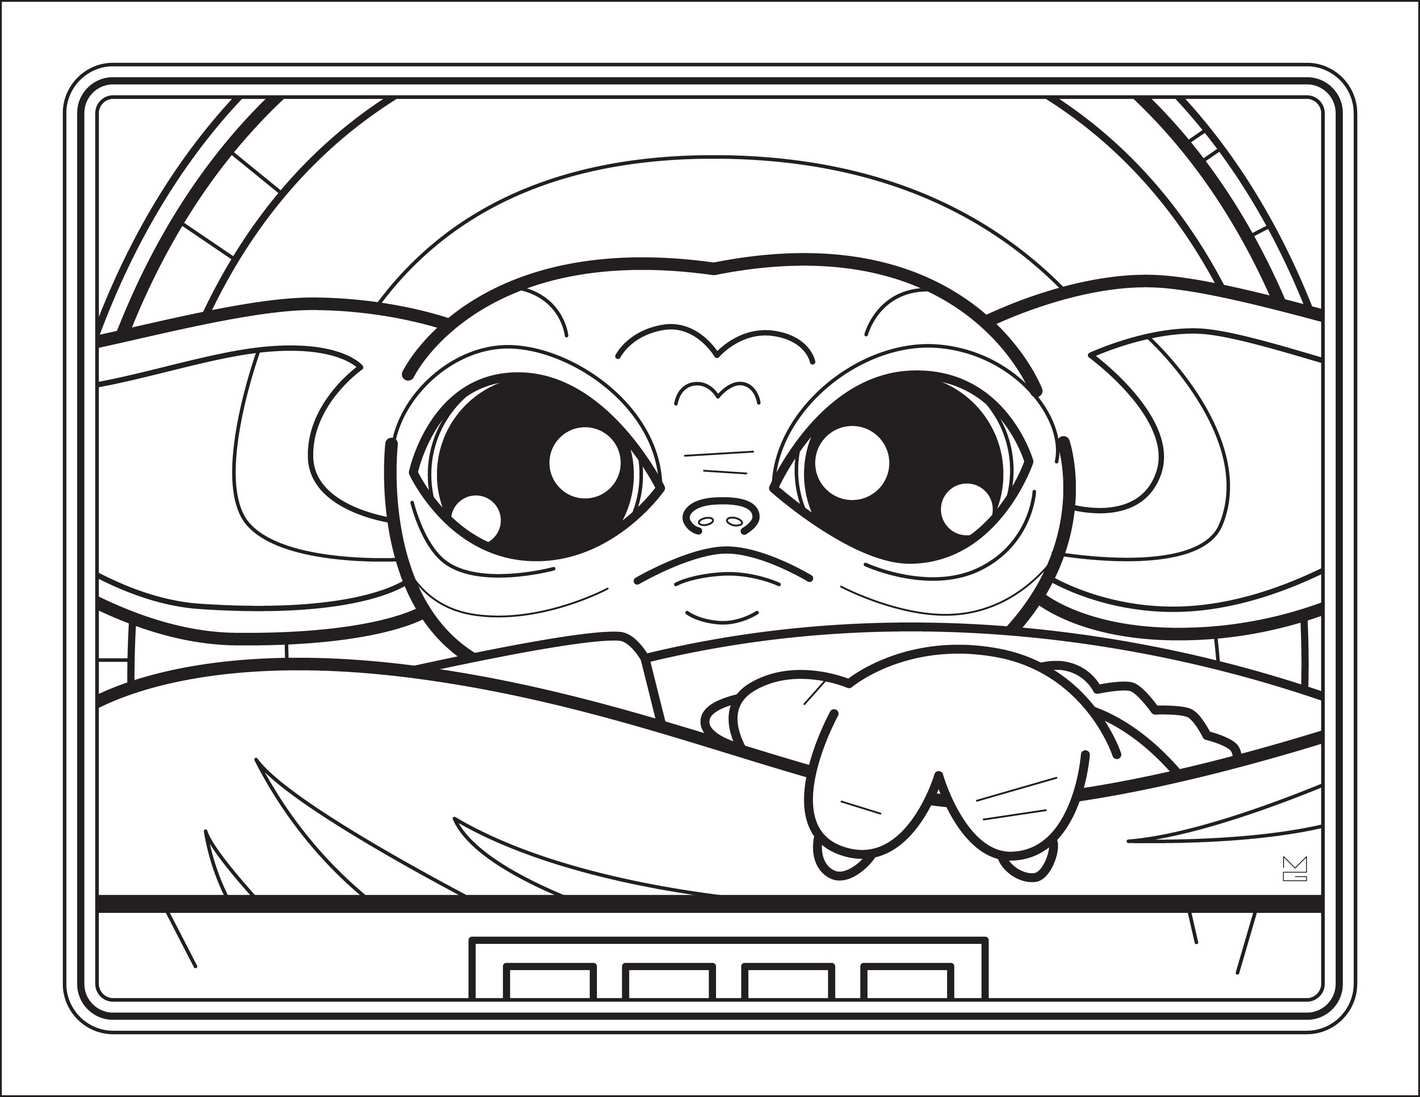 The Unofficial Baby Yoda Coloring Book Coloring books